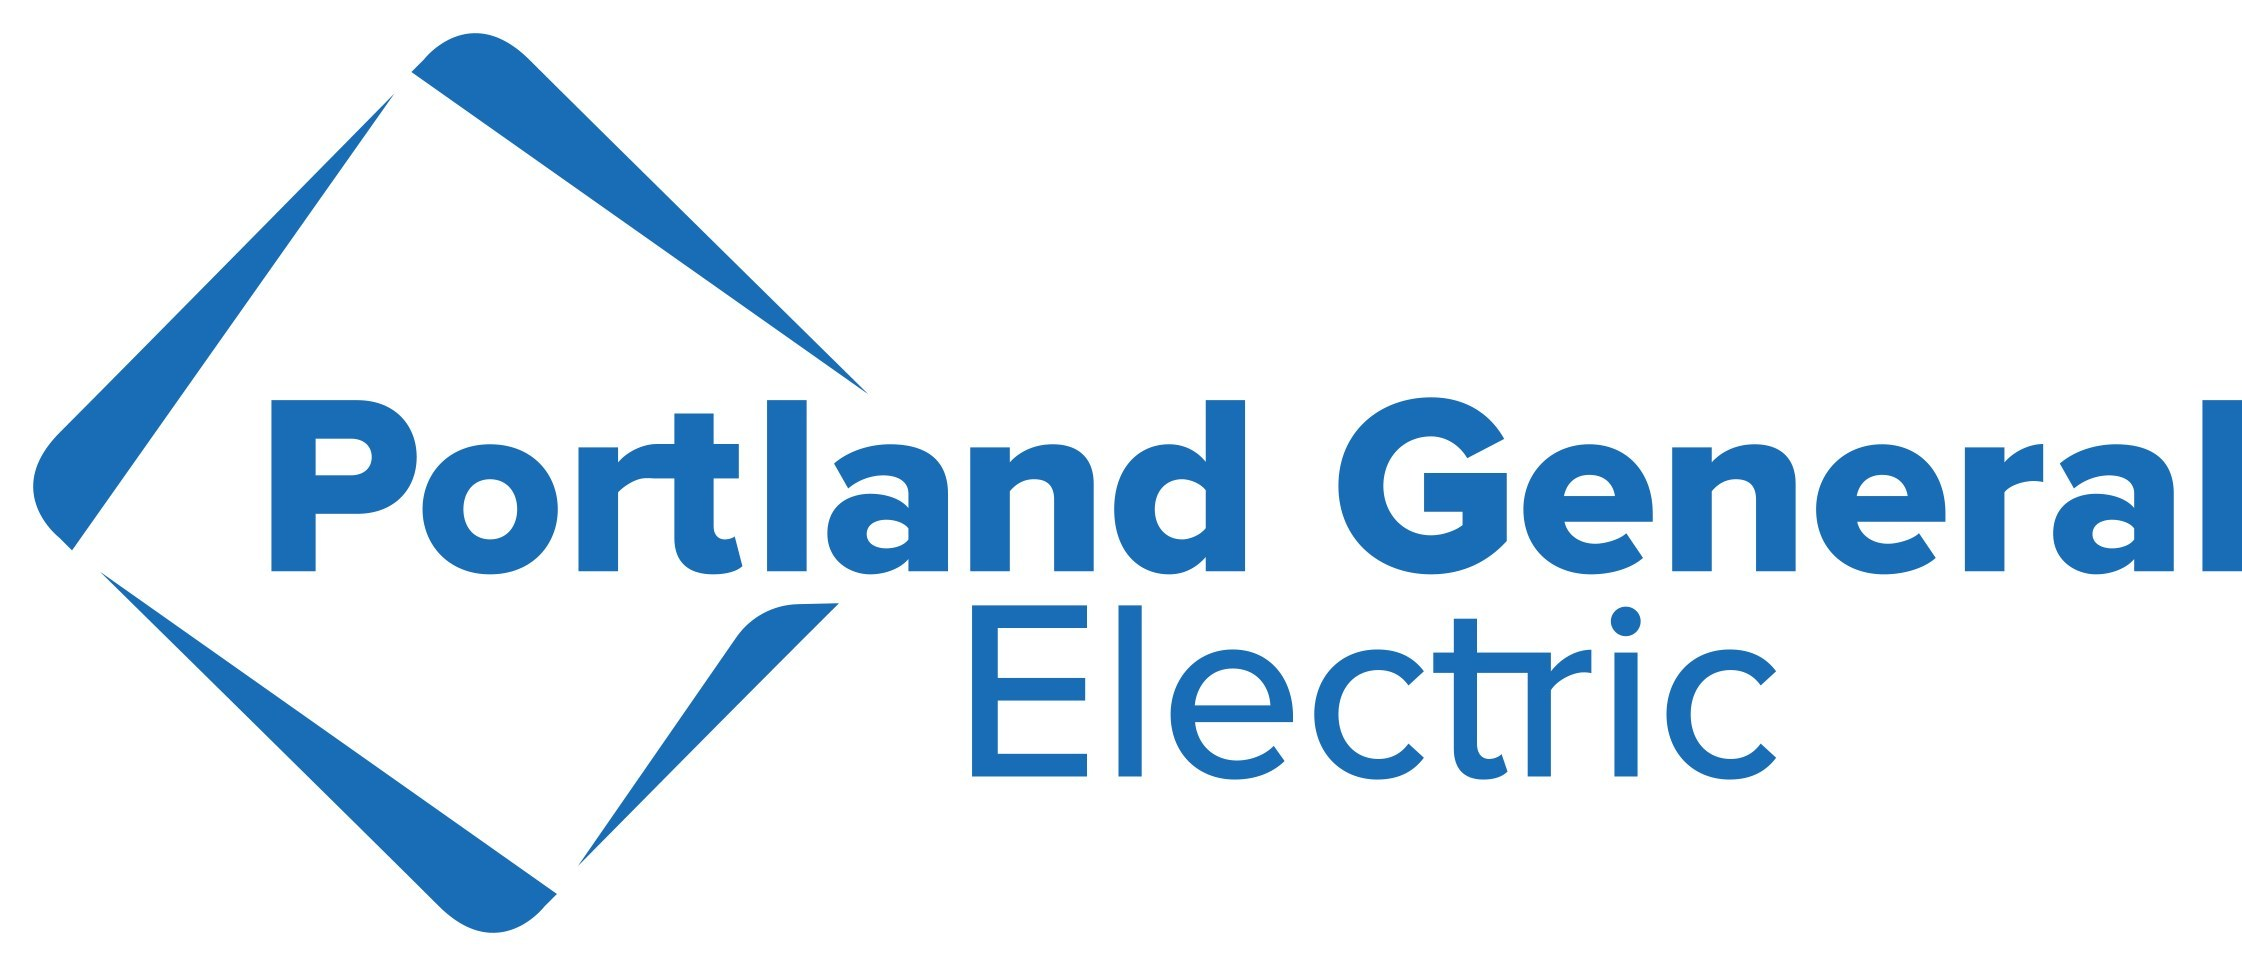 - Portland General Electric is a fully-integrated energy company serving 872,000 customers in 51 cities. For more than 125 years, PGE has been delivering safe, reliable, responsibly generated energy to Oregonians. With 2,700 employees across the state, PGE is committed to building a cleaner, more efficient energy future. Together with its customers, PGE has the number one voluntary renewable energy program in the U.S.